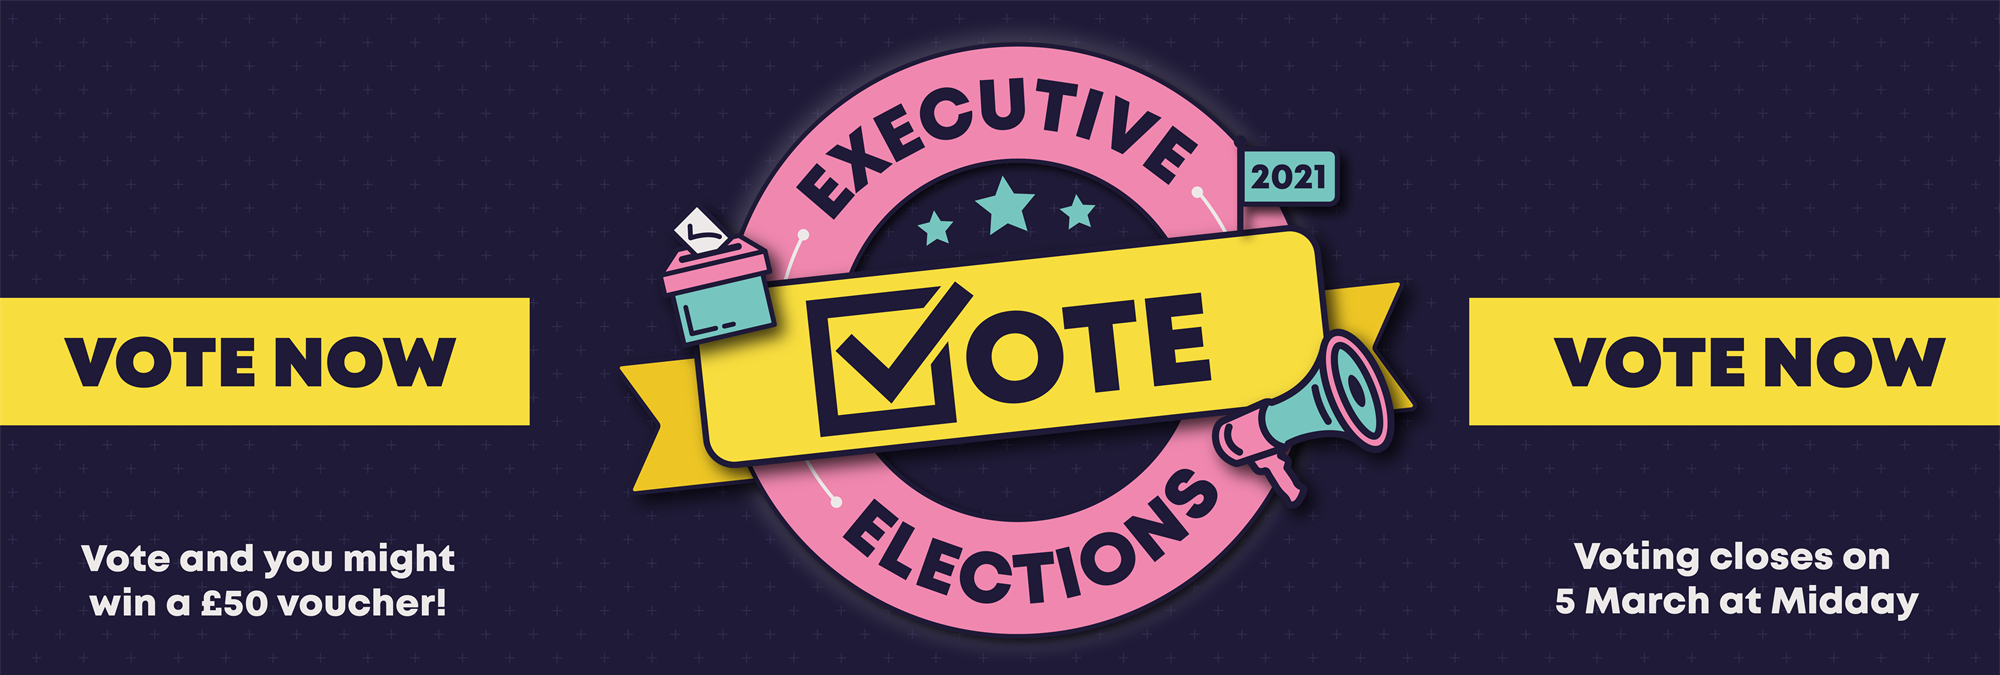 Executive Elections. Vote Now! Voting closes on 5th March at Midday. Vote and you might win a £50 vo